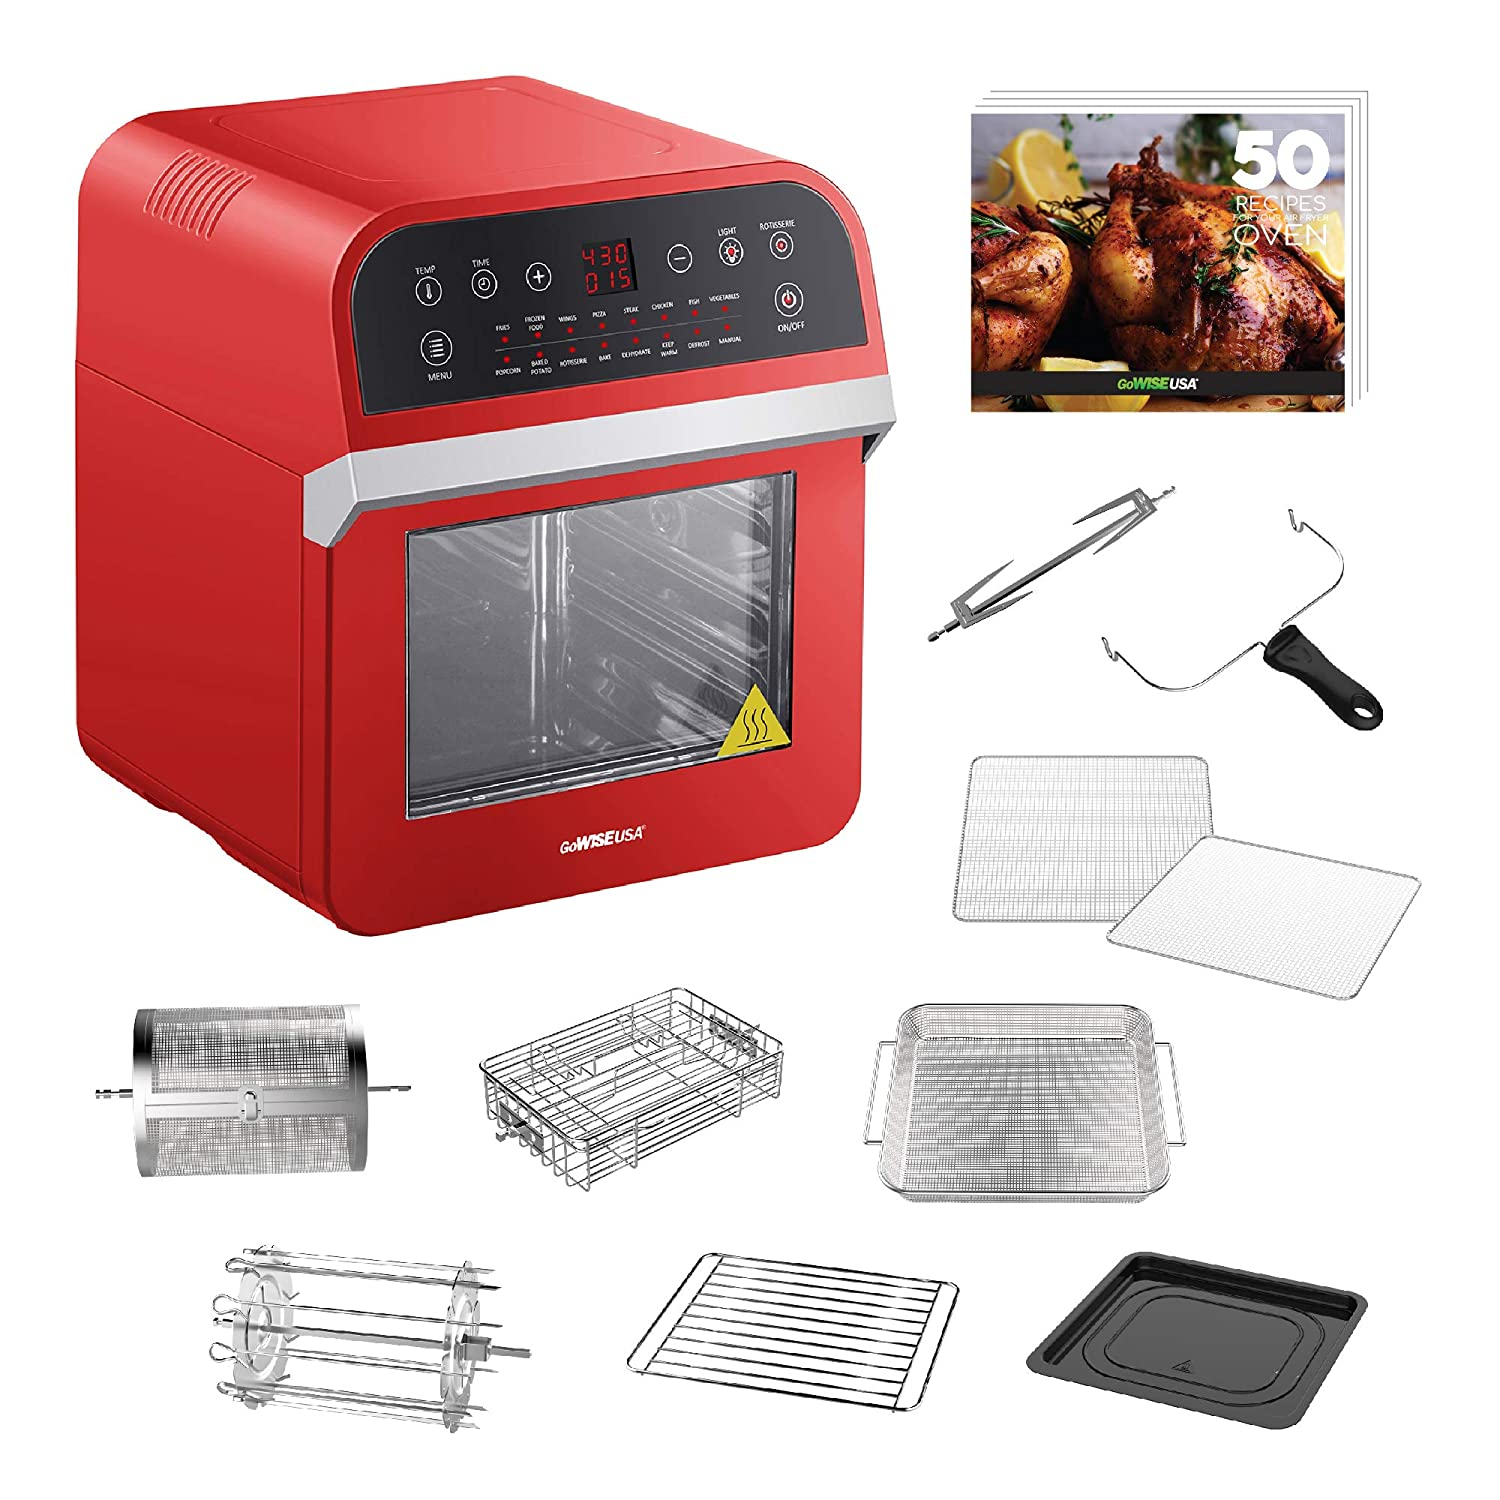 GoWISE USA 12.7-Quart 15-in-1 Electric Air Fryer Oven w/Rotisserie and Dehydrator + 50 Recipes for your Air Fryer Oven Book (Red)